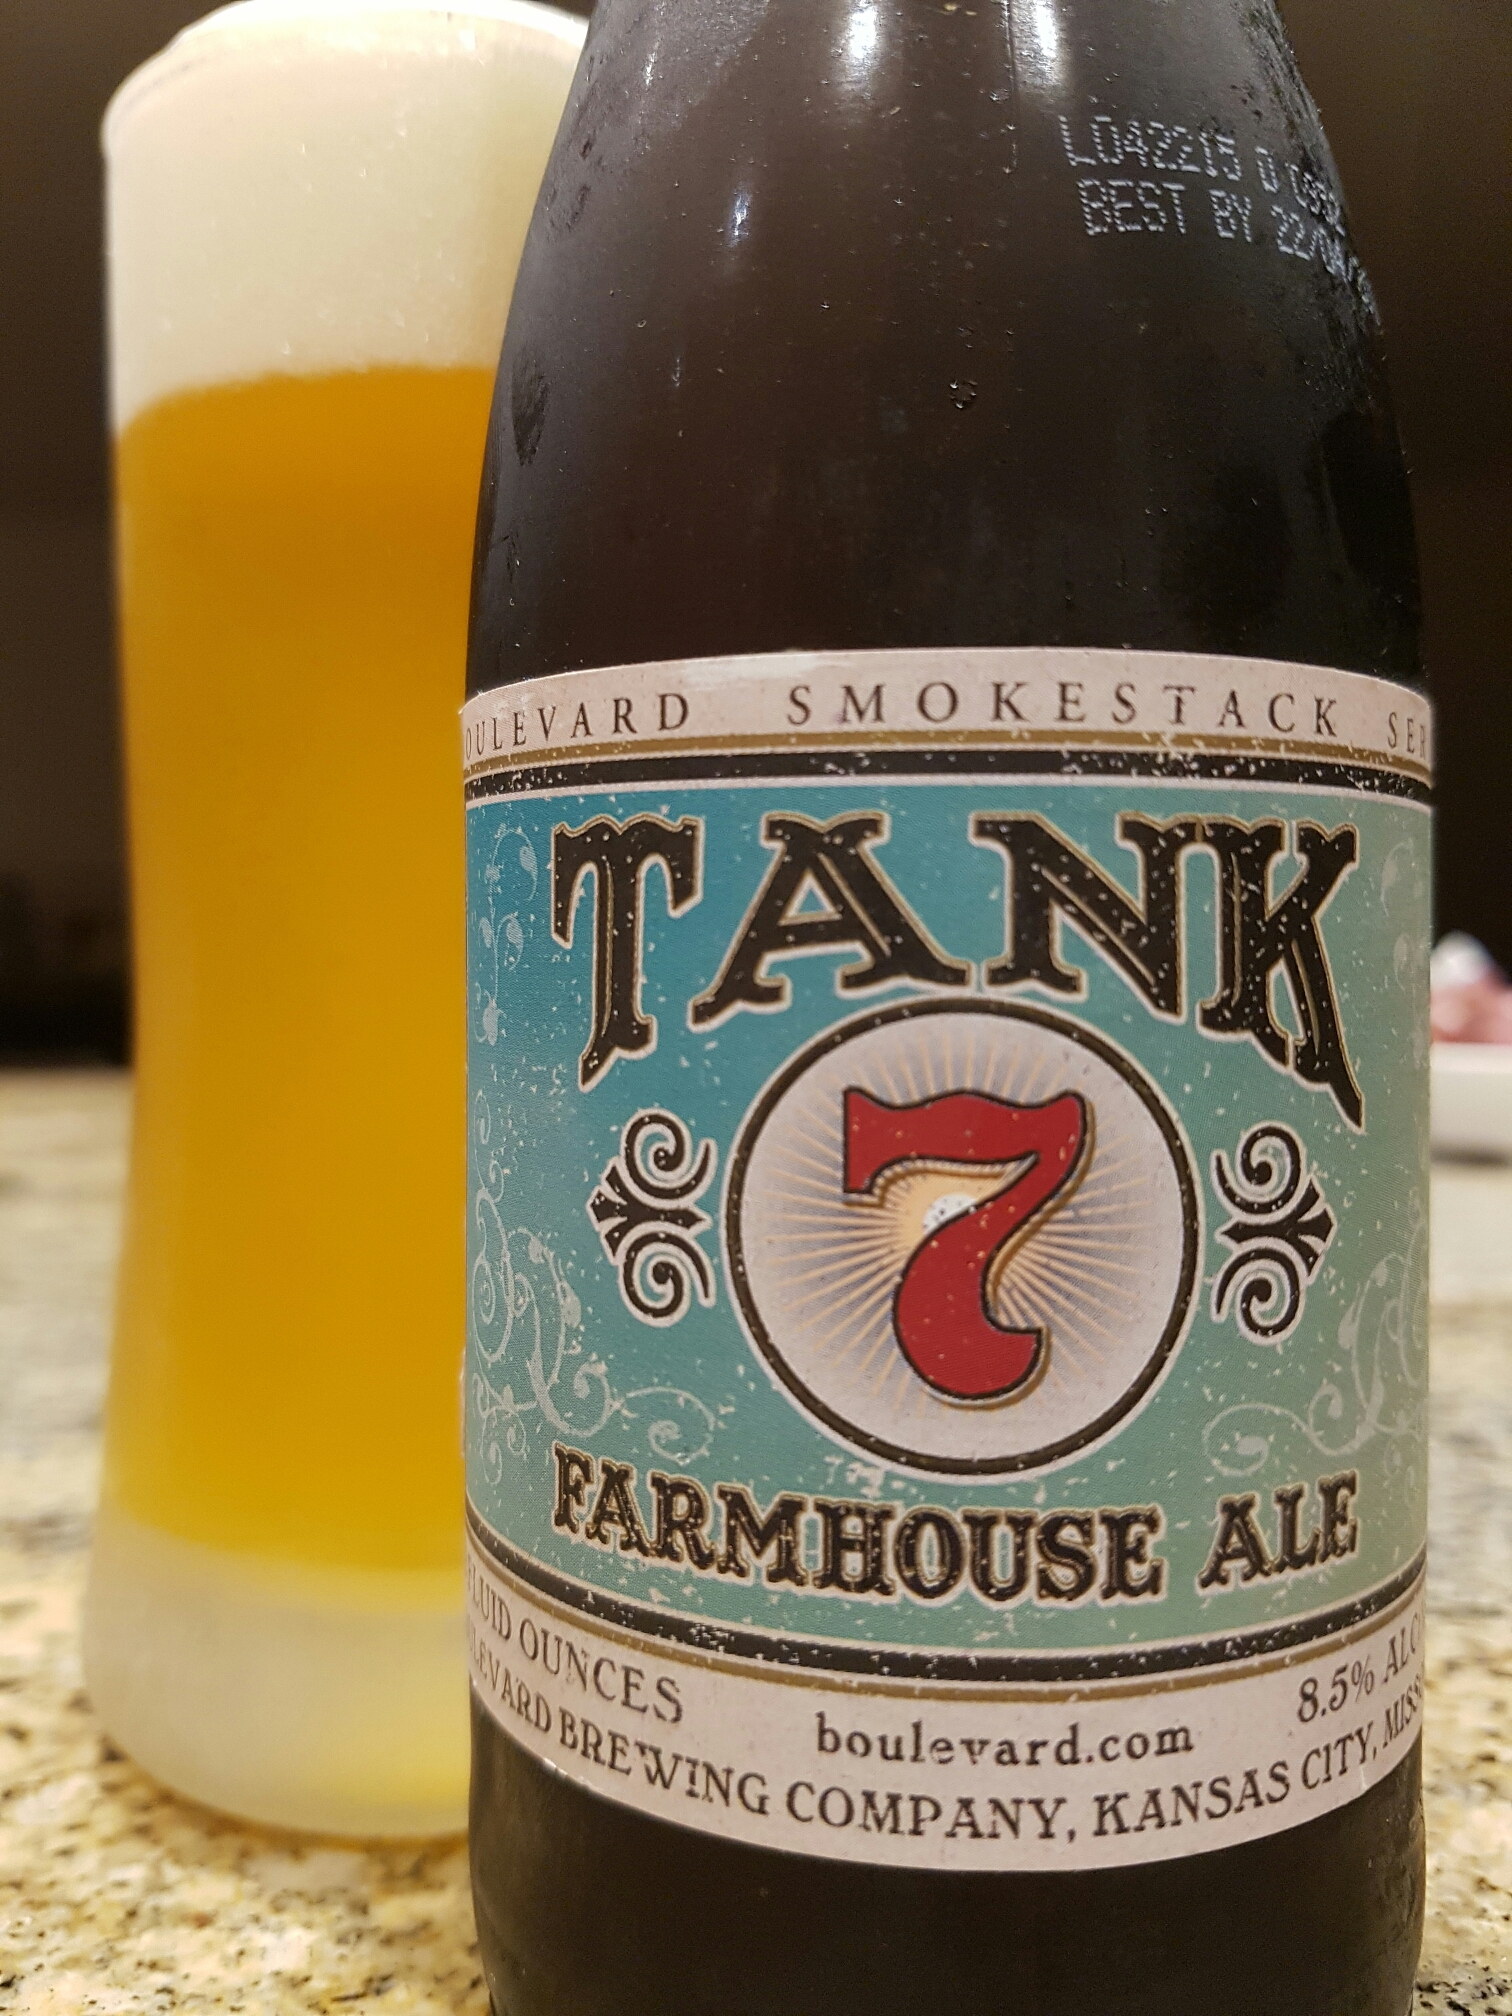 Boulevard Smokestack Series Tank 7 Farmhouse Ale – Boulevard Brewing Co Ka